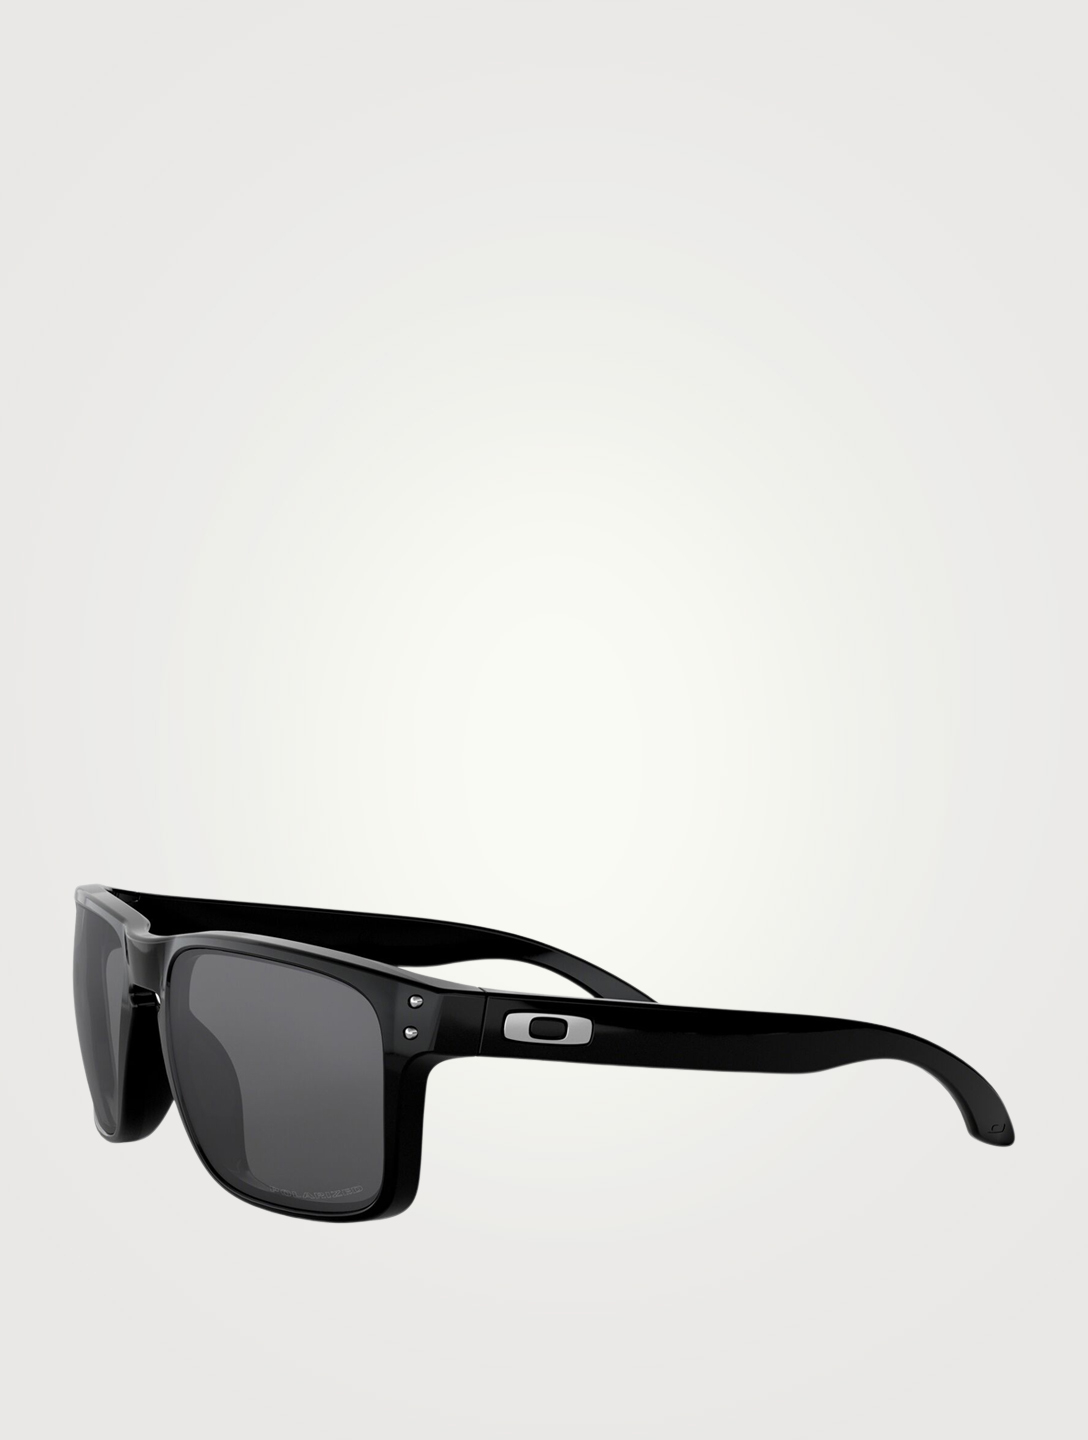 OAKLEY Holbrook Polarized Square Sunglasses Men's Black